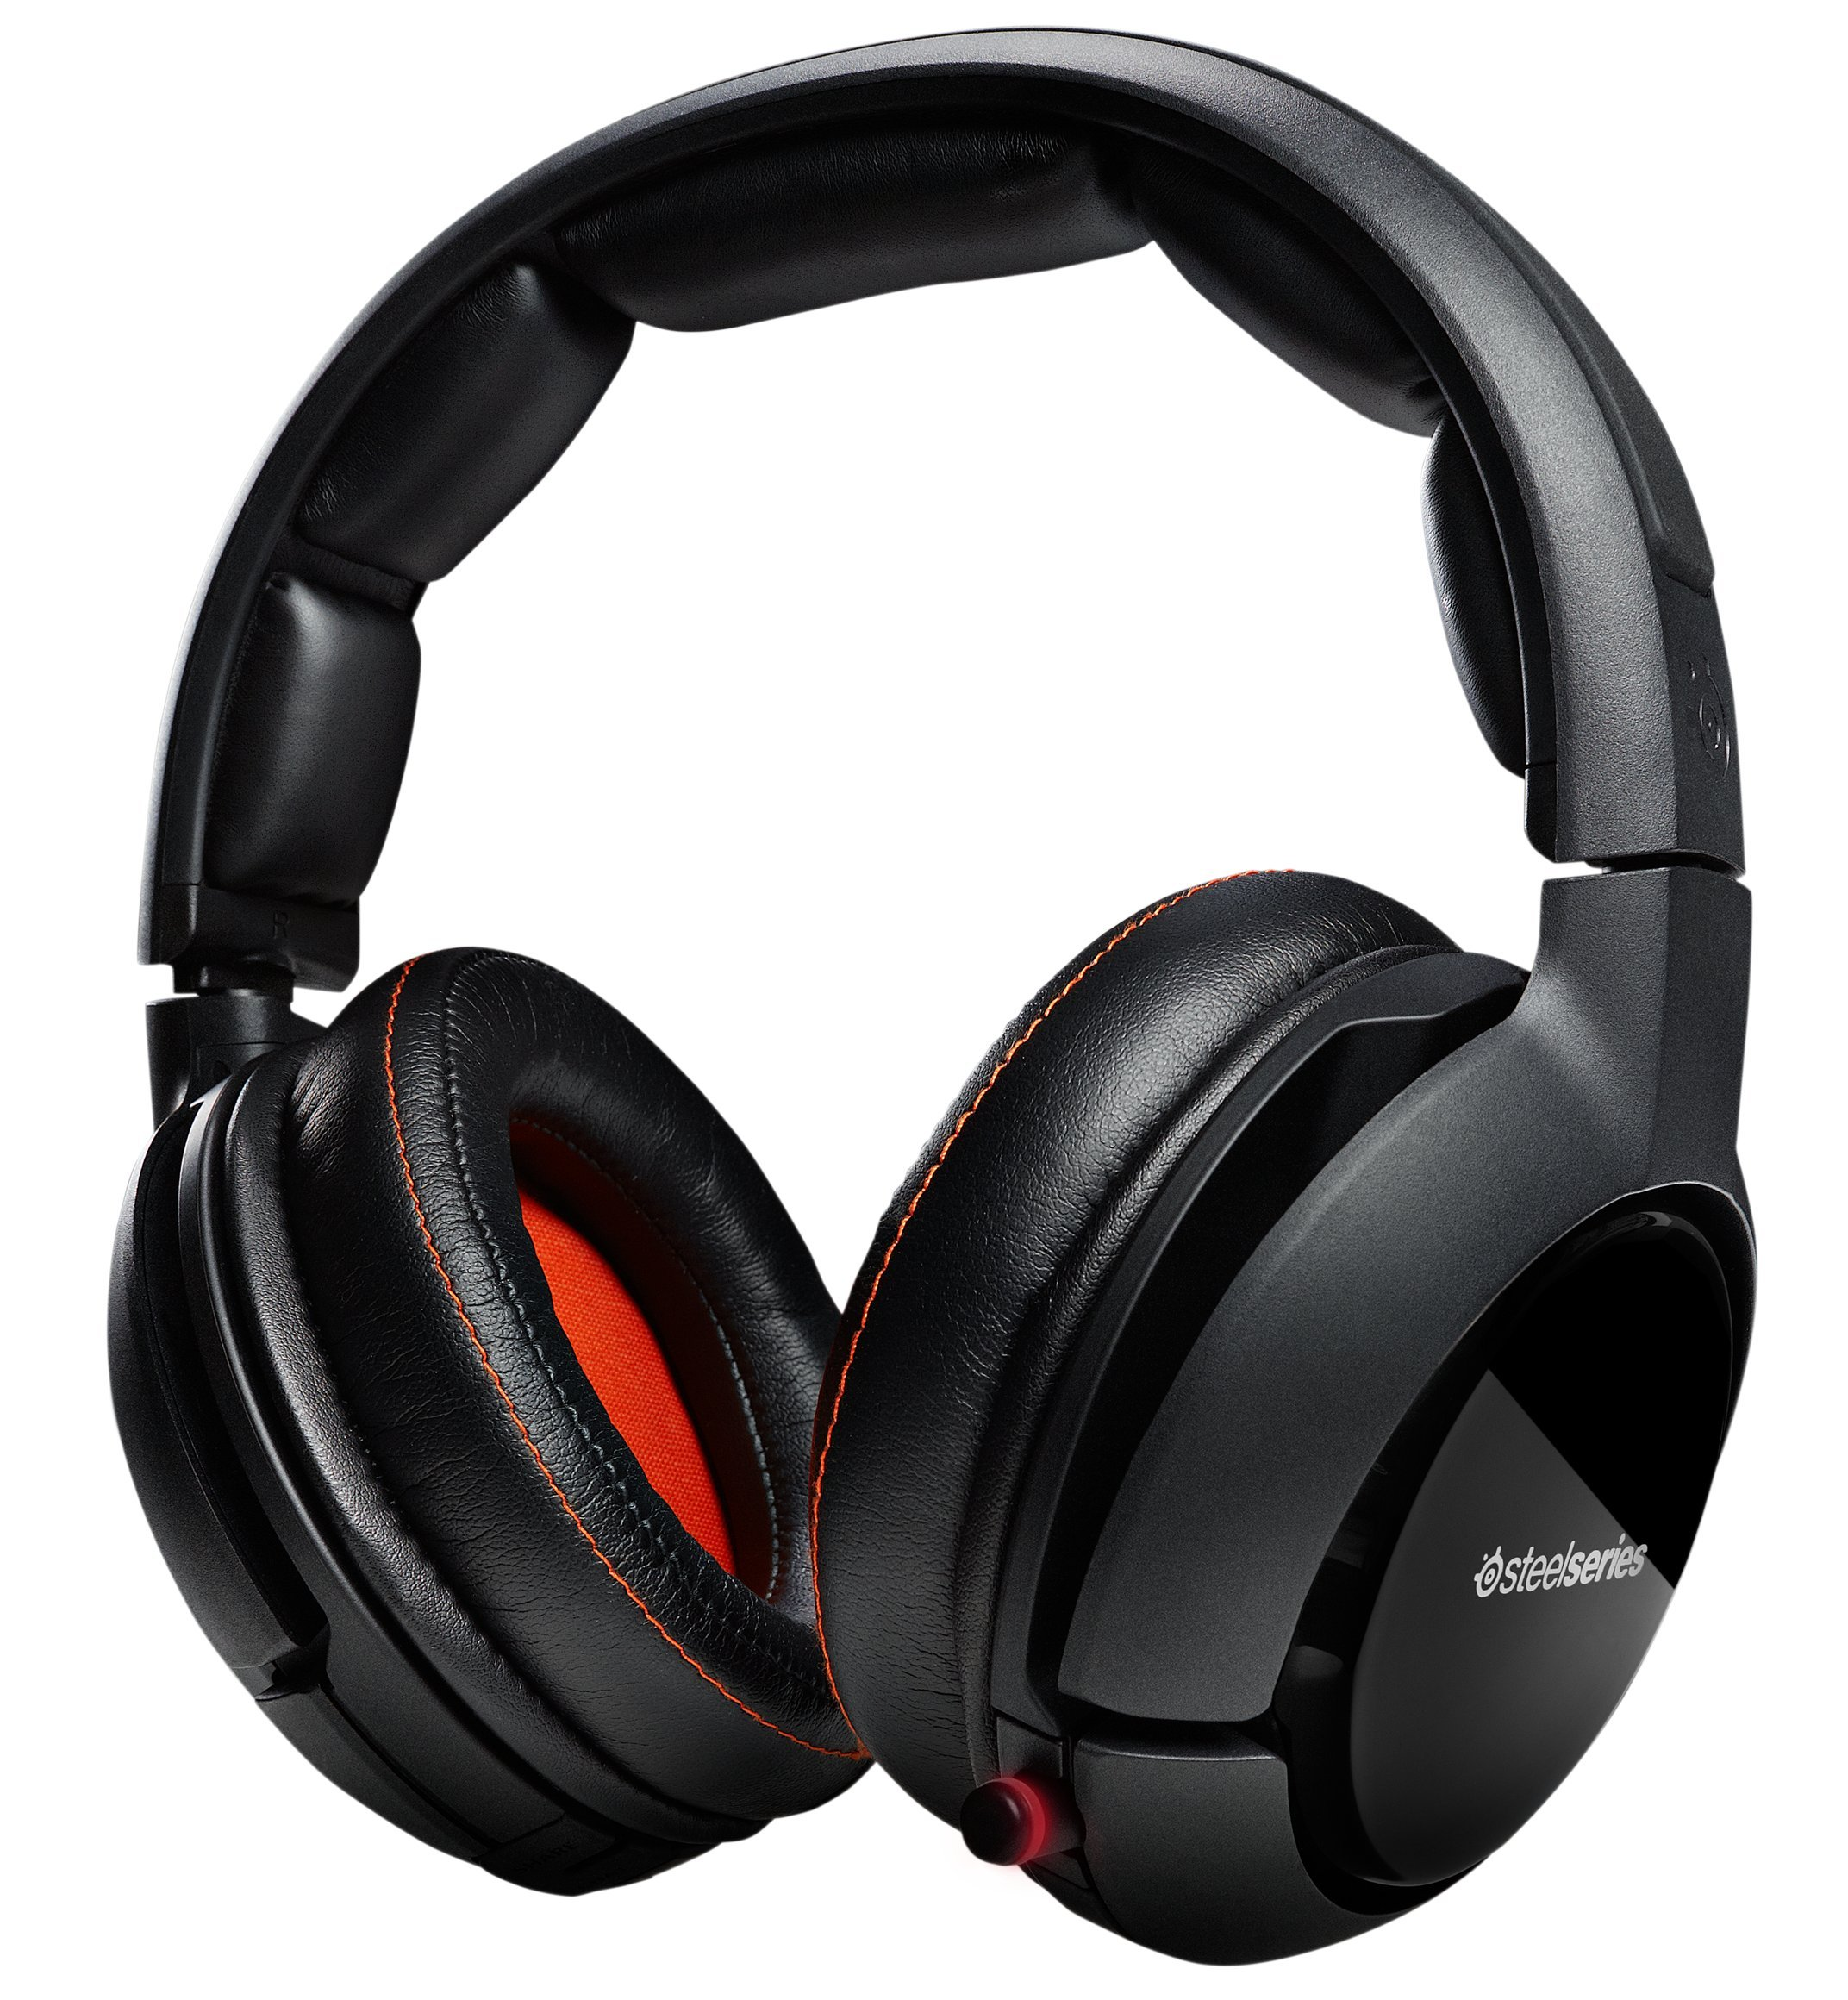 SteelSeries Siberia X800 Wireless Gaming Headset with Dolby 7.1 Surround Sound for Xbox One, Xbox 360 by SteelSeries